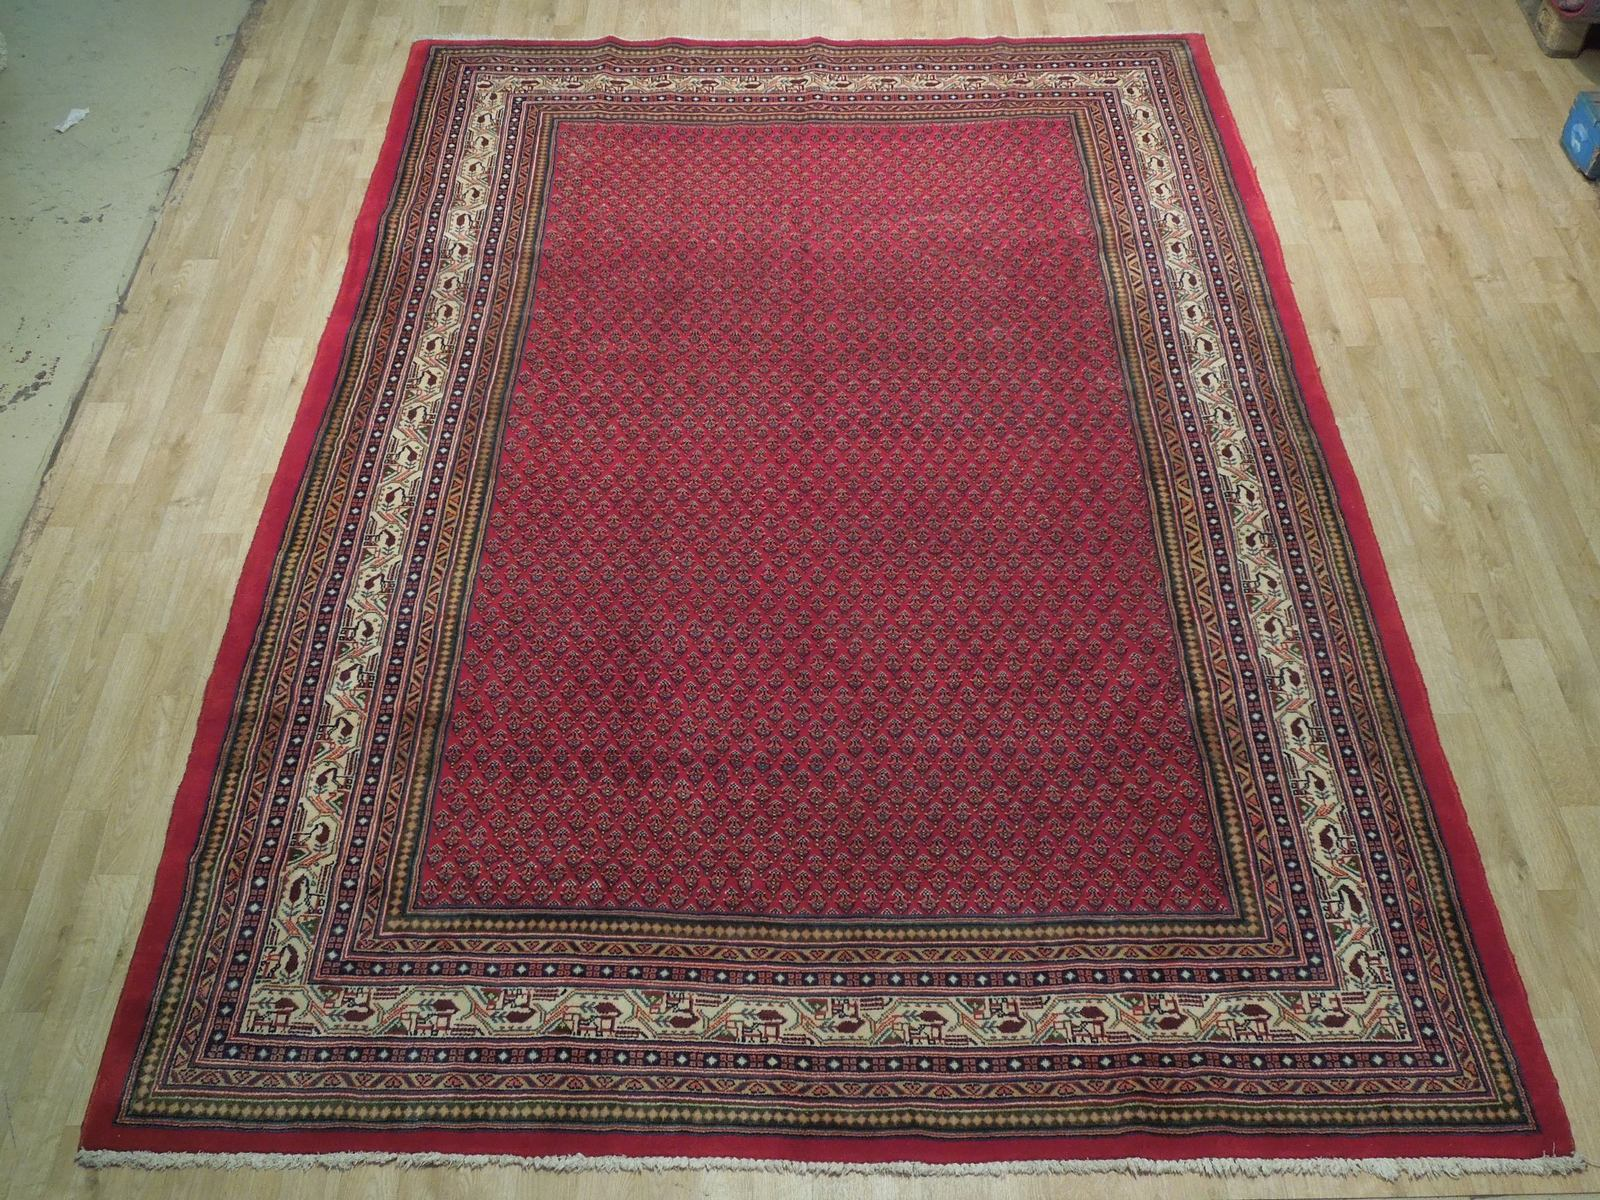 Vivid Boteh Flamed All-Over Persian Hand-Knotted 7x10 Red Mir Wool Area Rug image 4